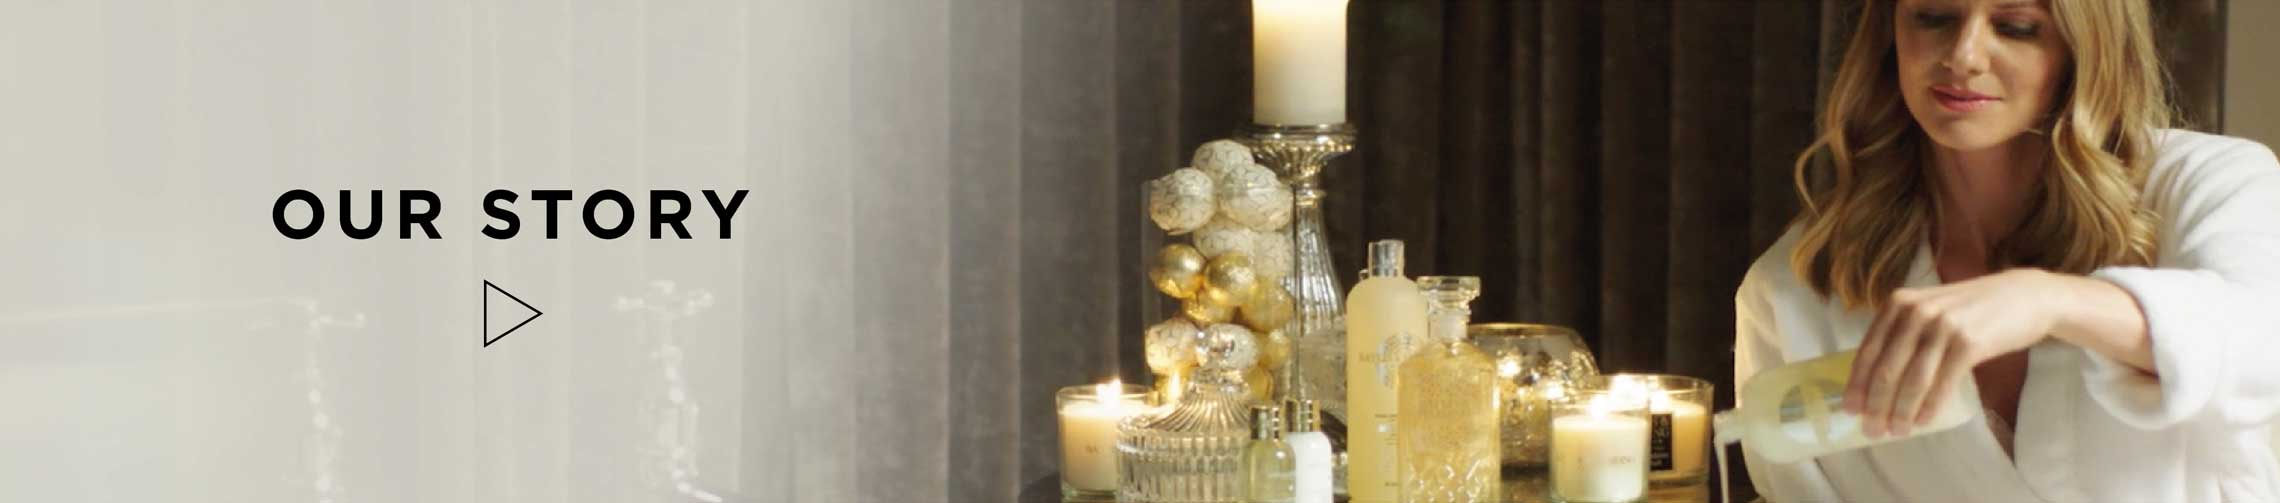 Baylis & Harding - At home with our home fragrance collection.